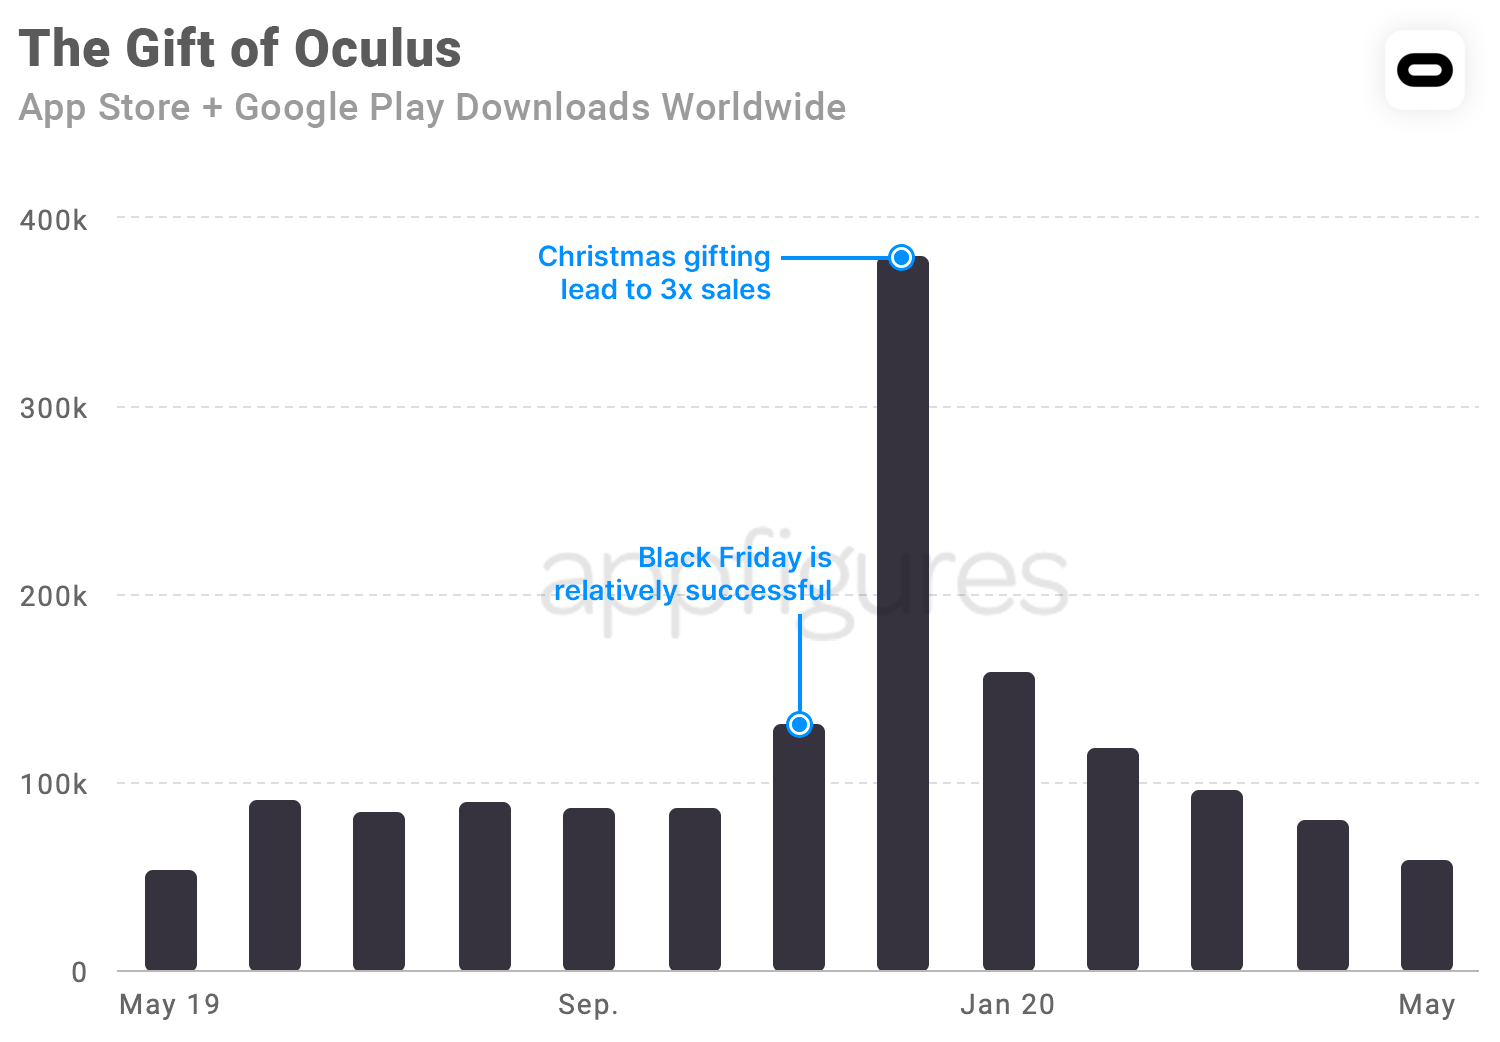 Oculus app downloads by month